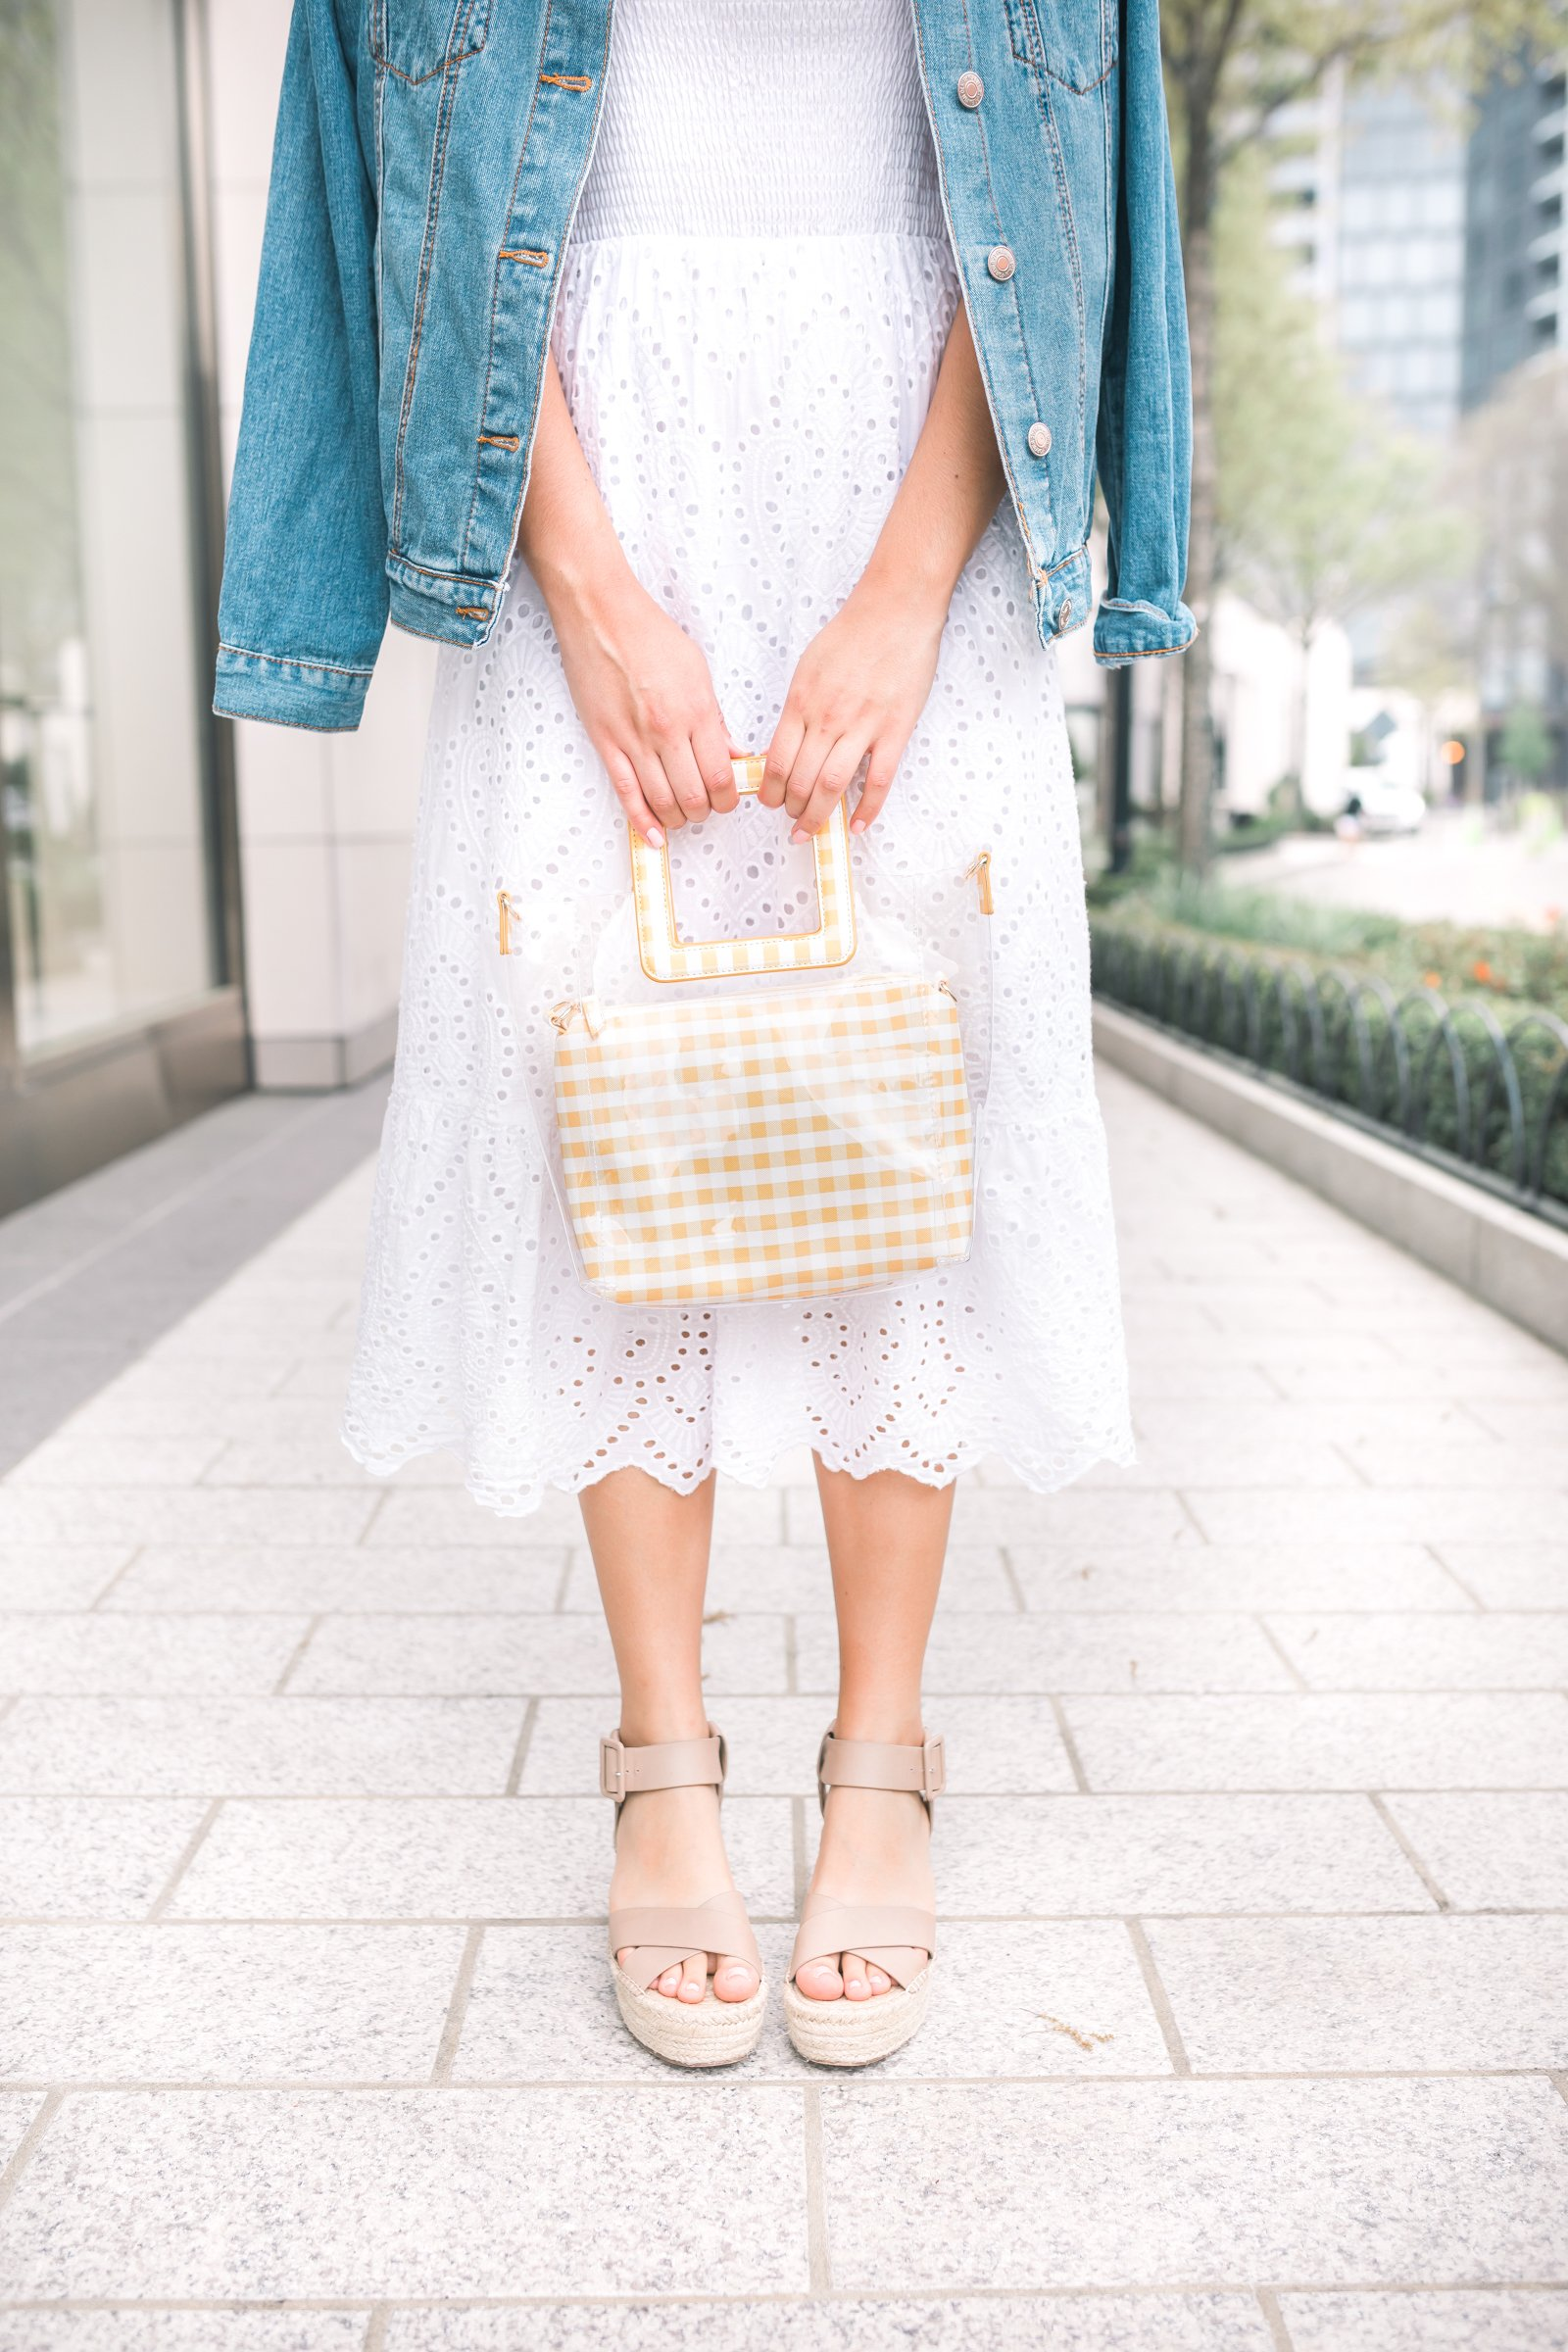 girl wearing a white eyelet midi dress a jean jacket and tan sandals